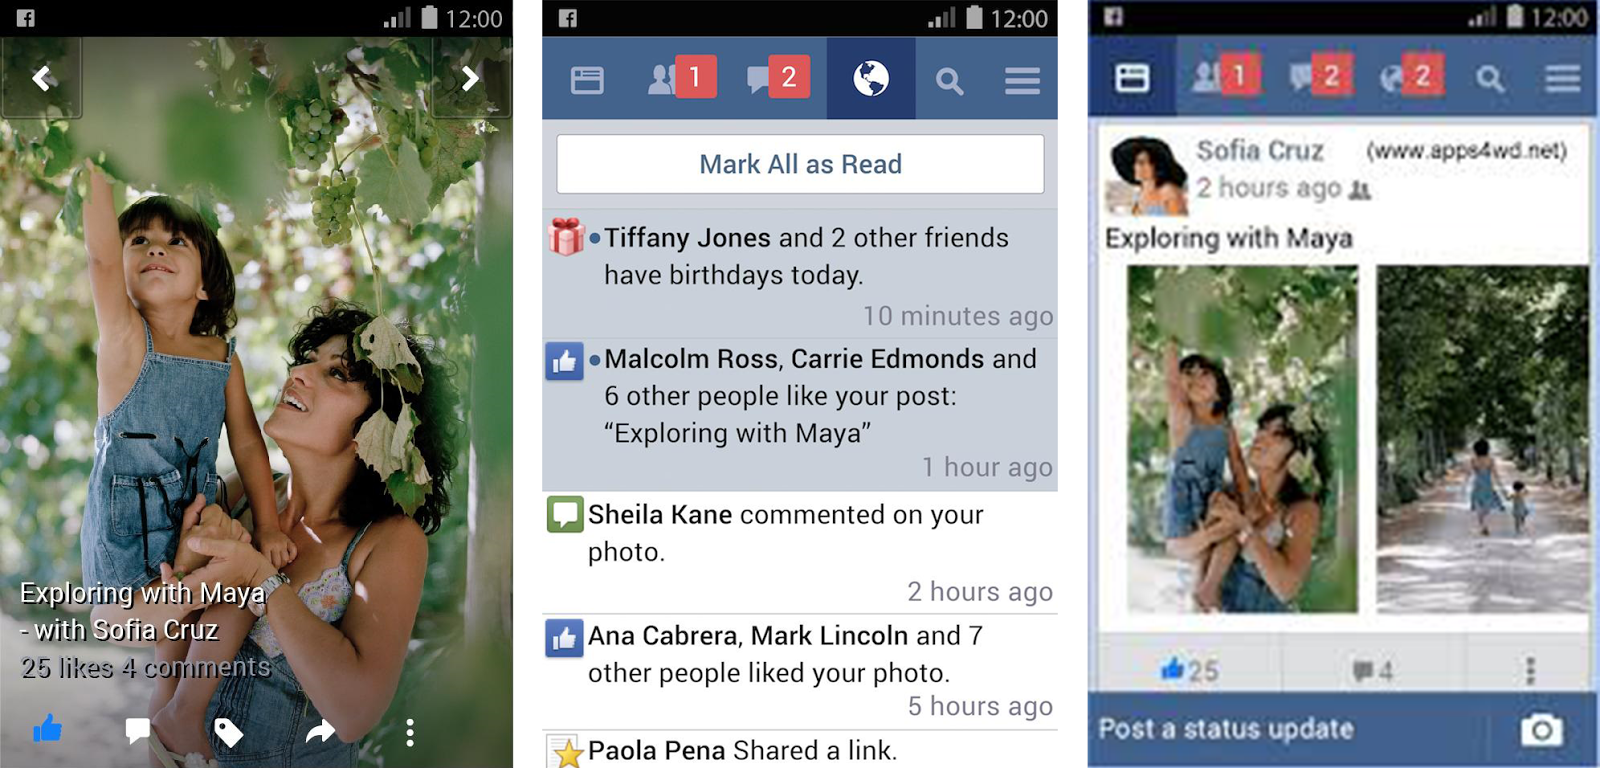 Facebook Lite 20.0.0.6.4 Beta Apk Mod Version Latest